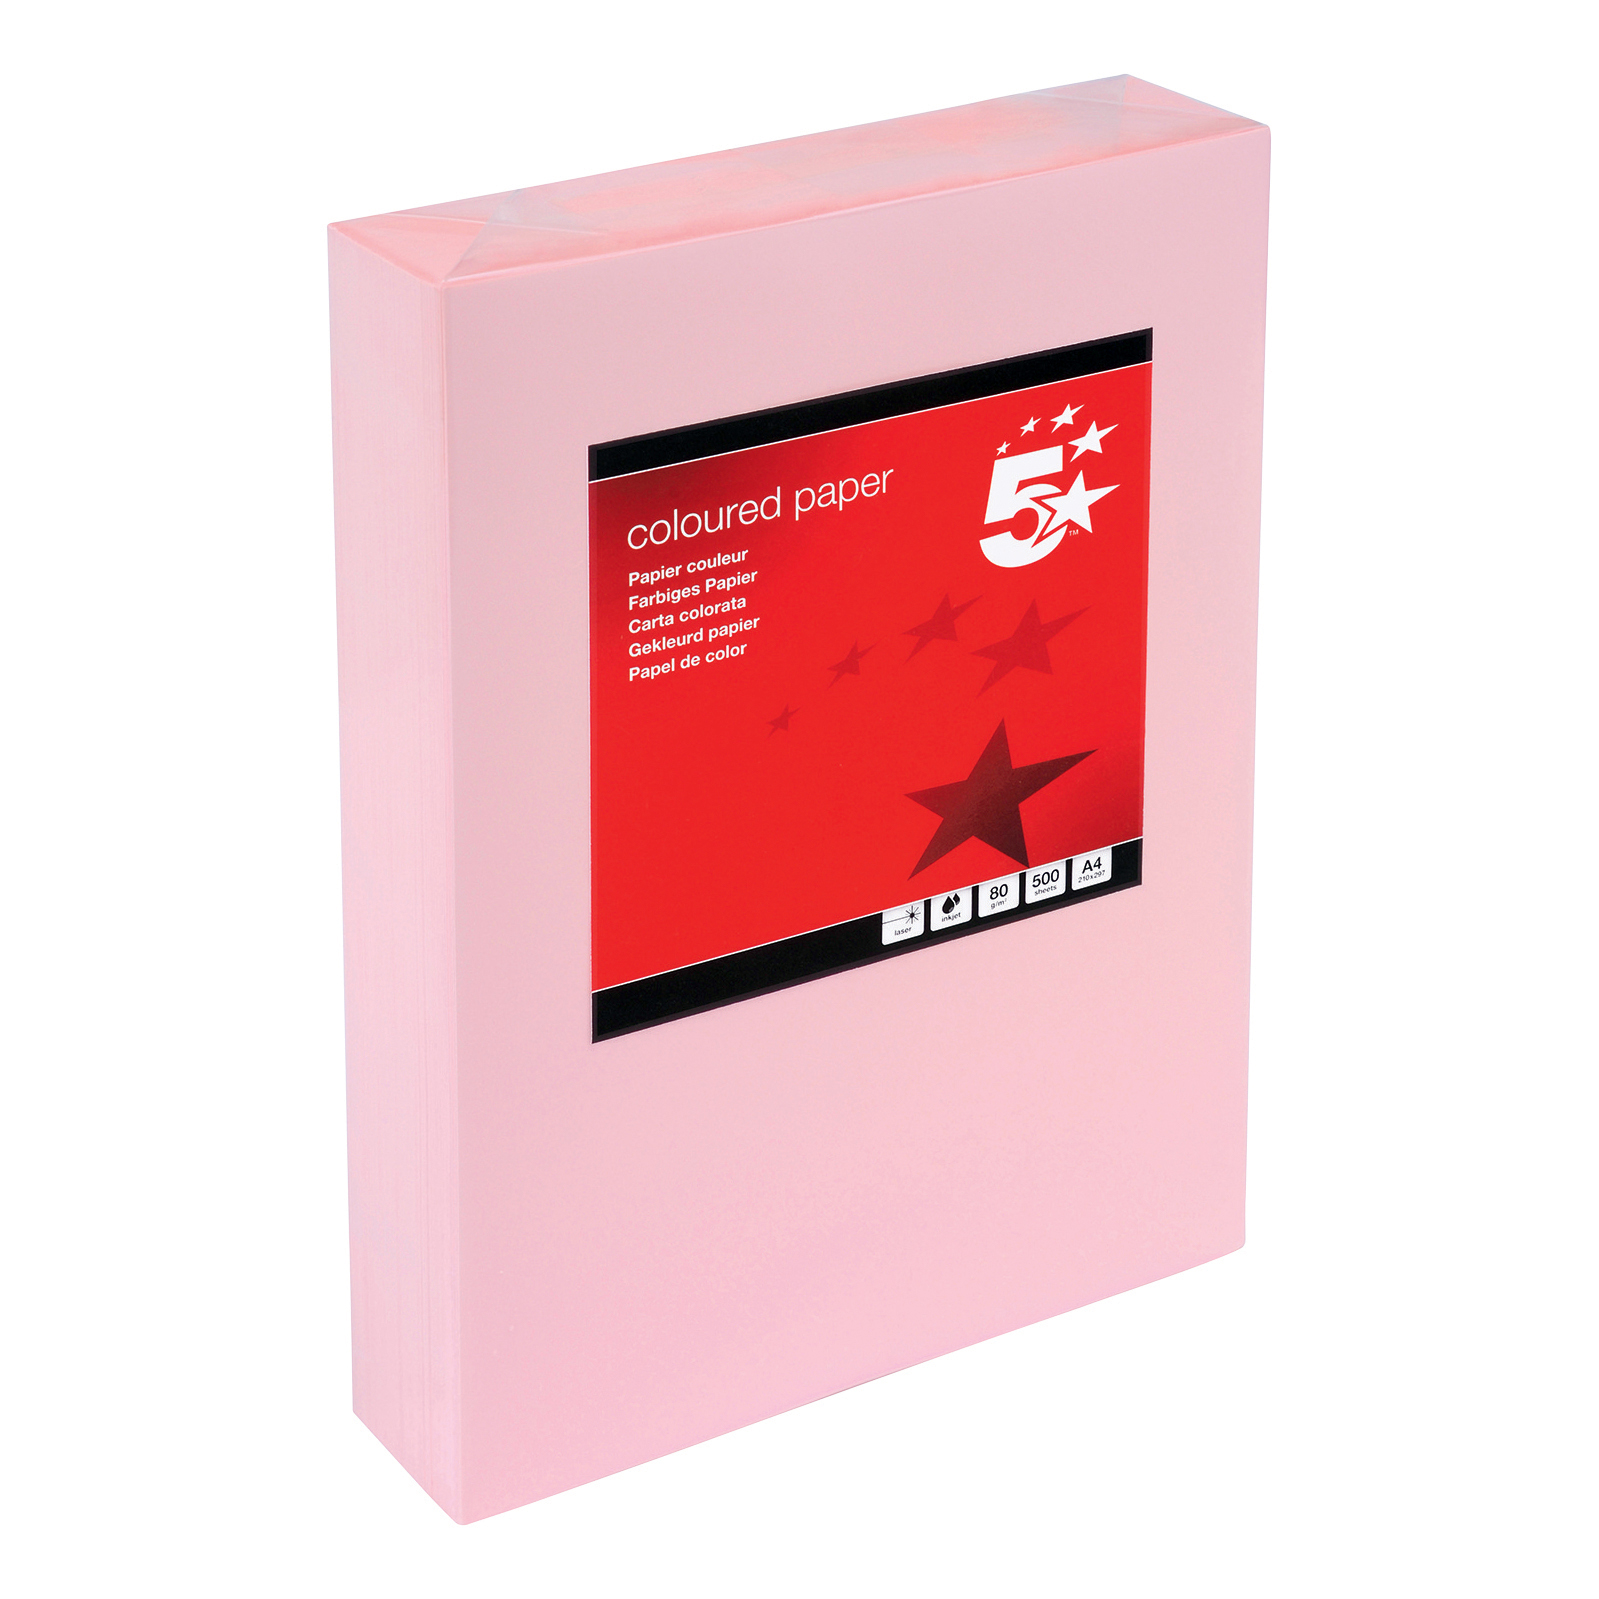 A4 5 Star Office Coloured Copier Paper Multifunctional Ream-Wrapped 80gsm A4 Light Pink [500 Sheets]